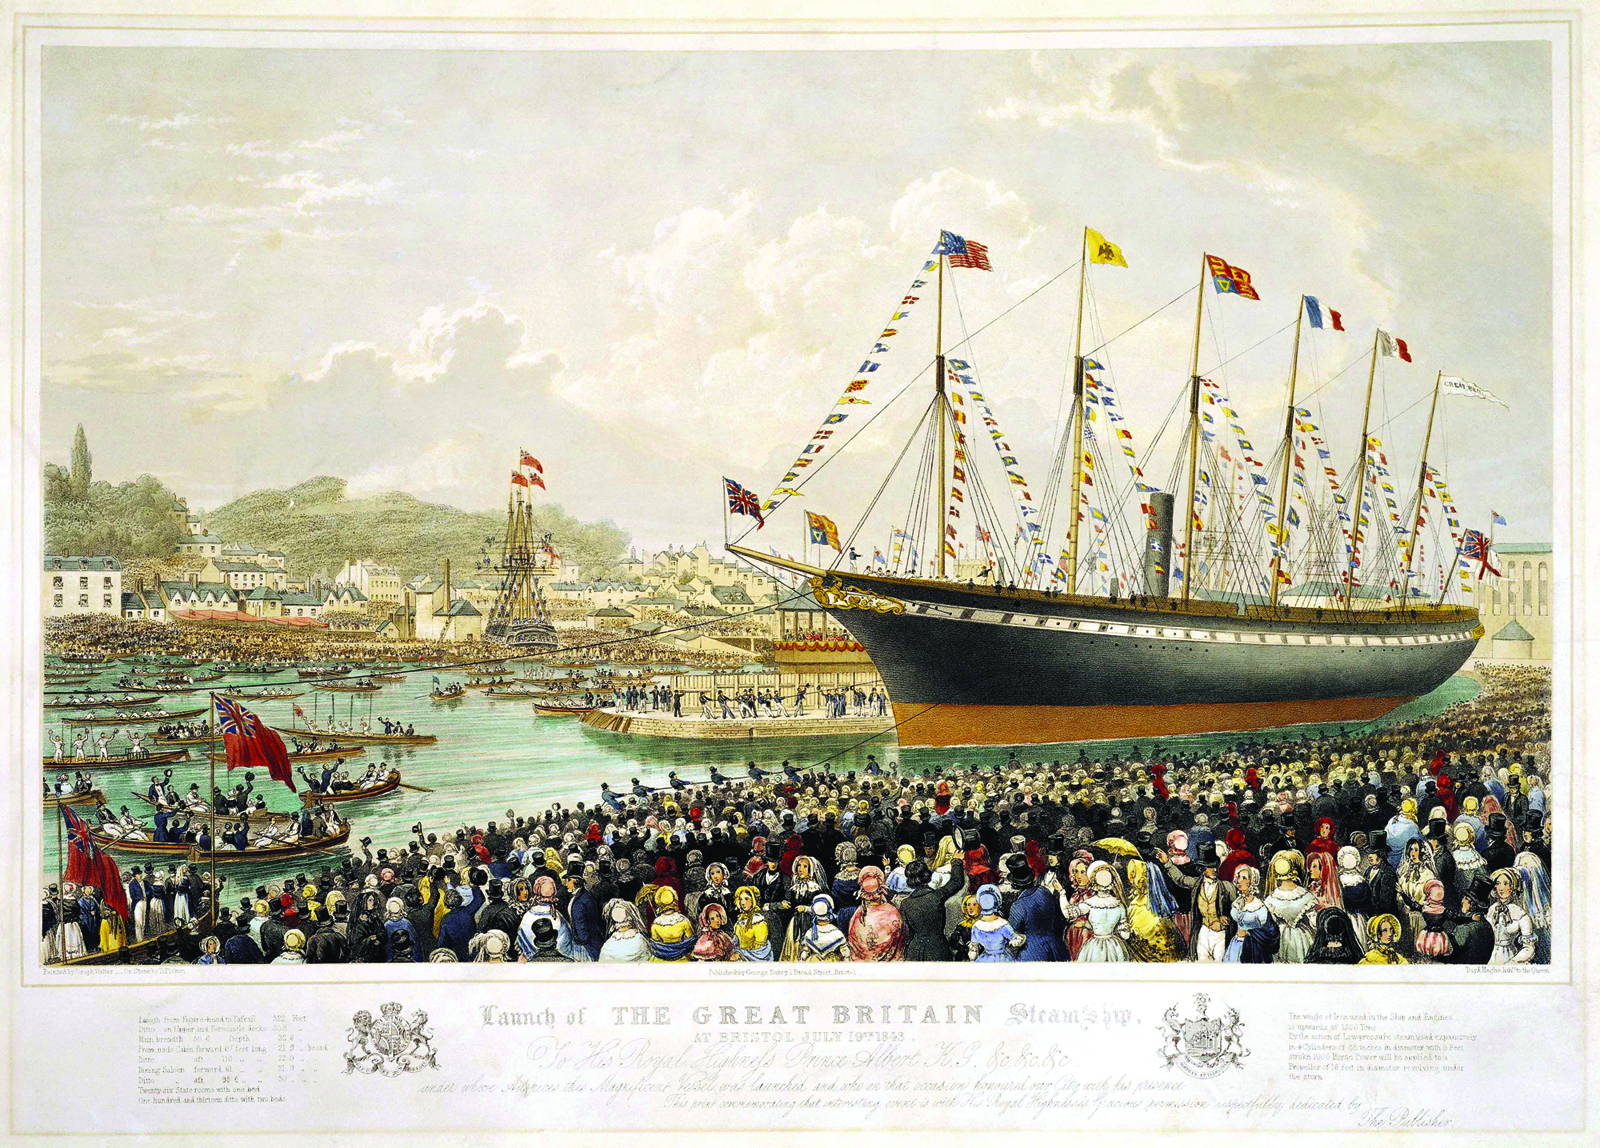 Launch of the SS Great Britain, the revolutionary ship of Isambard Kingdom Brunel, at Bristol in 1843.